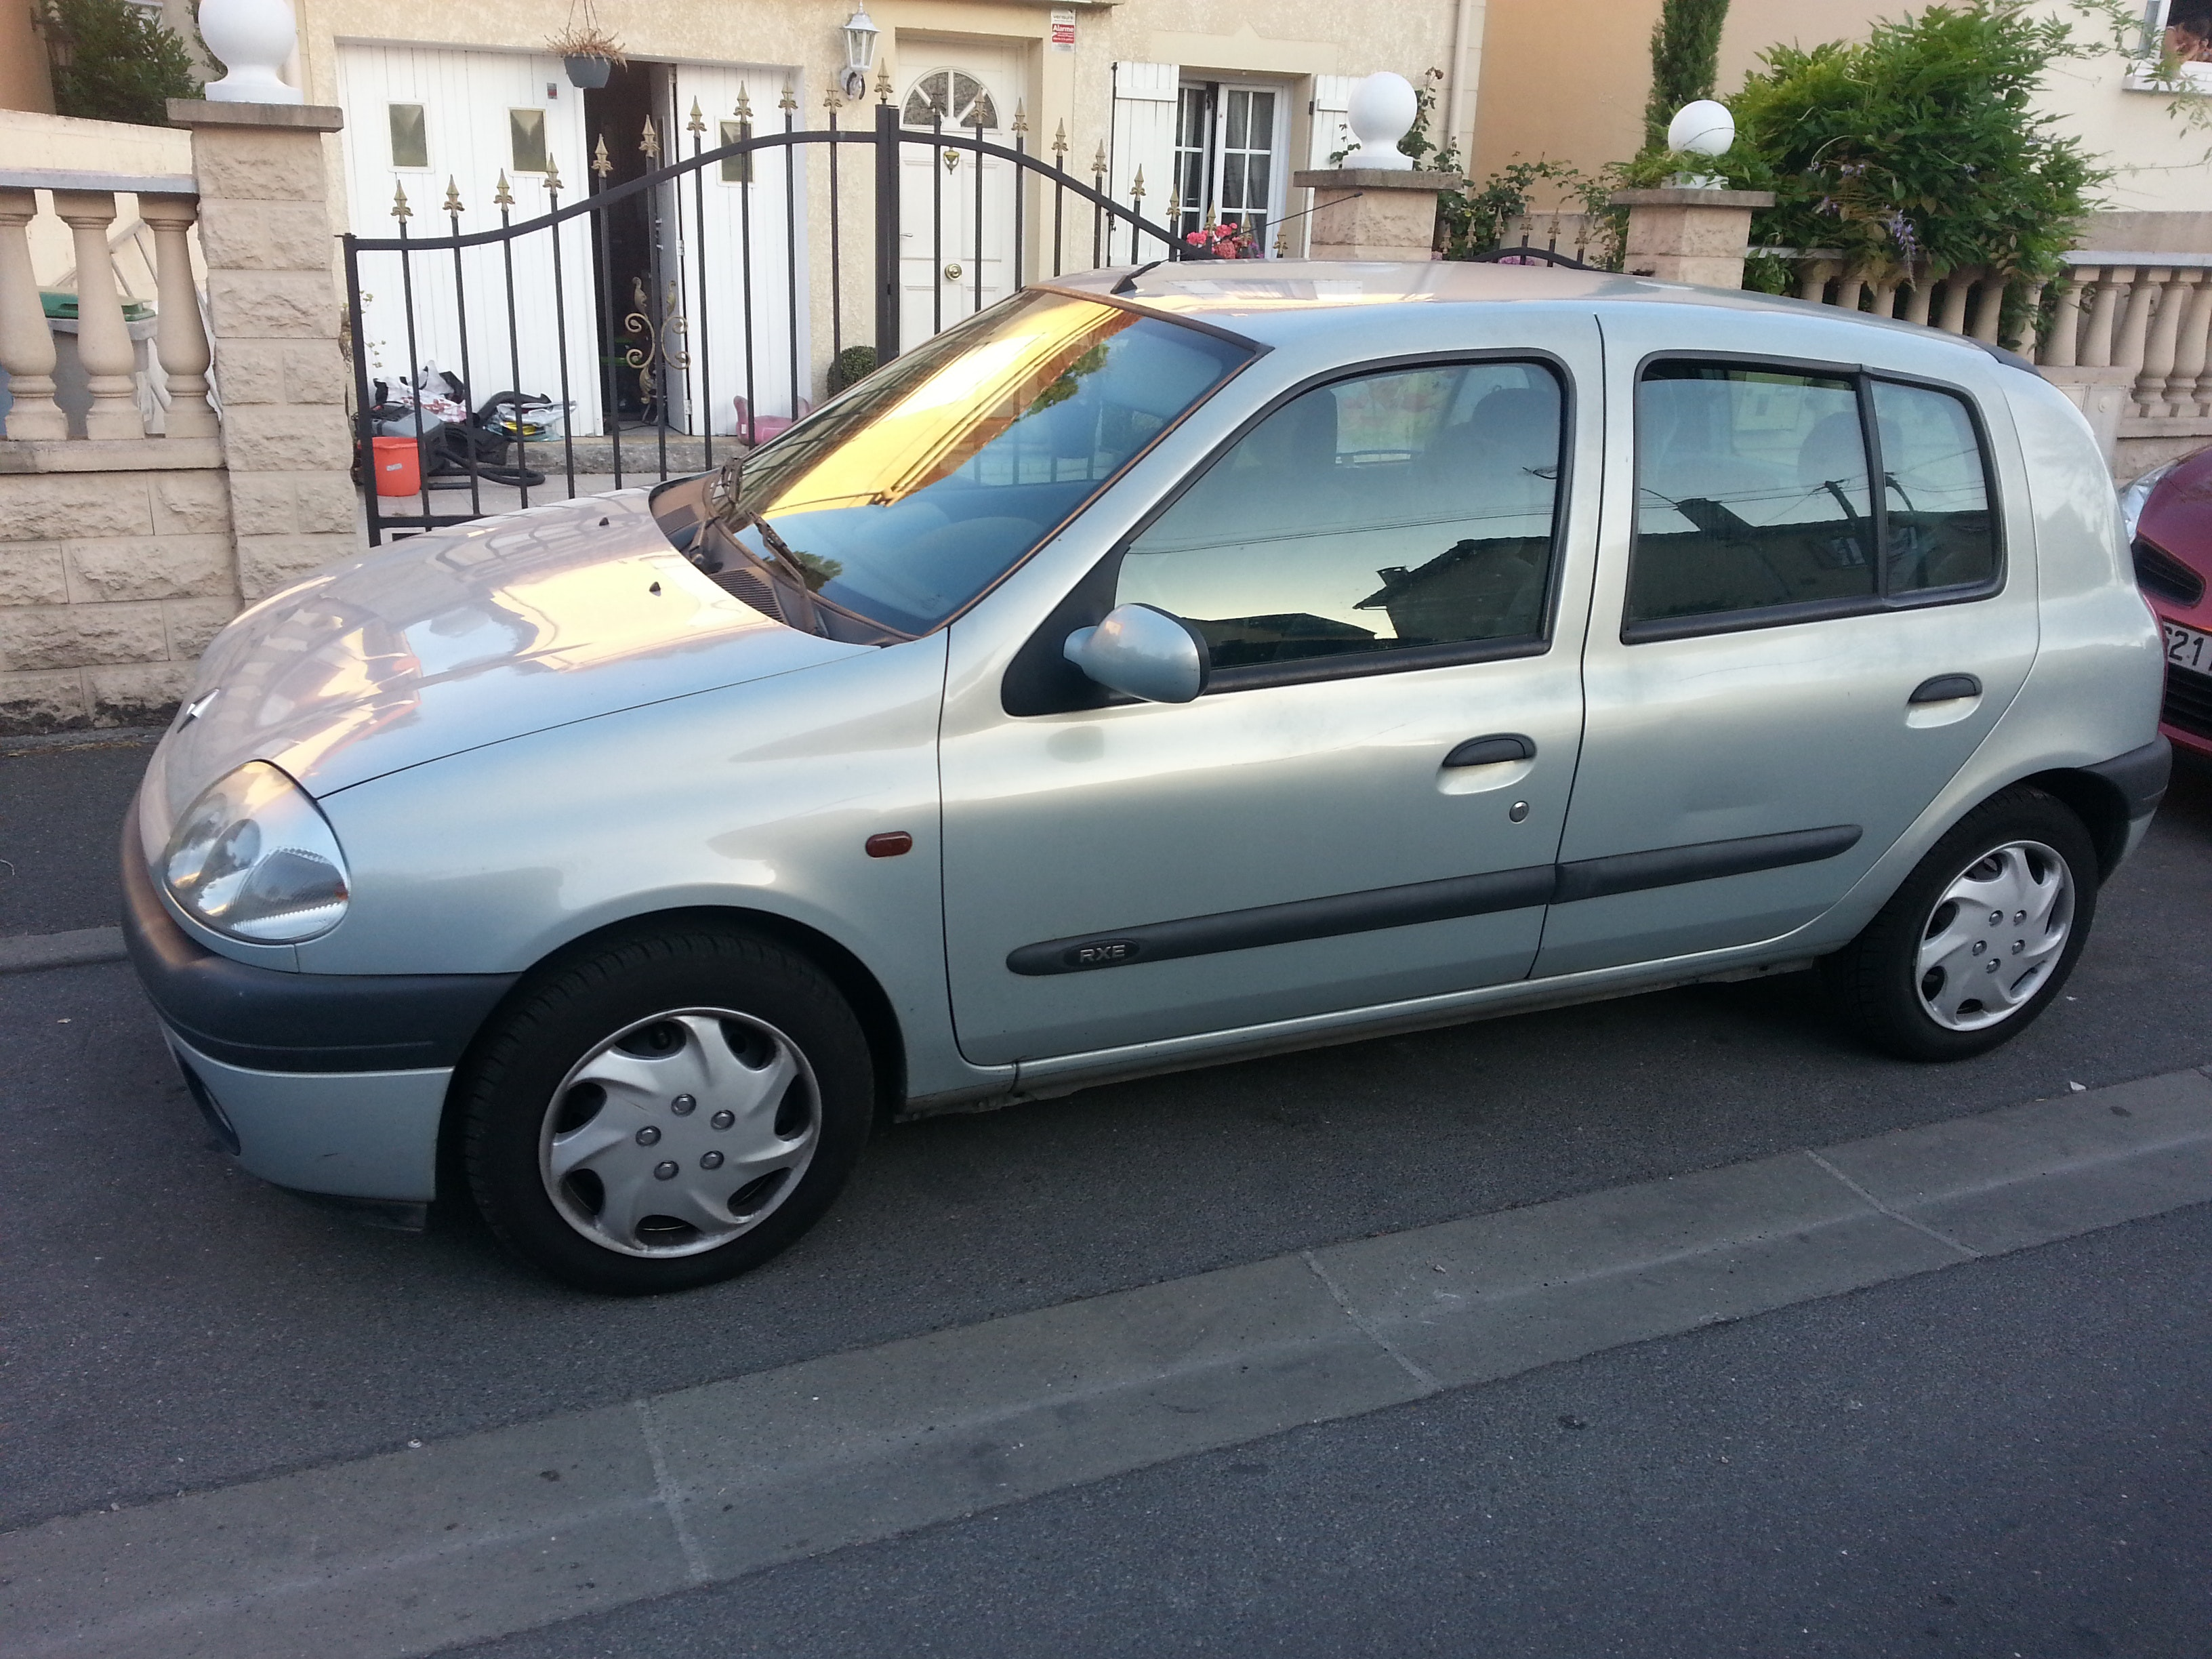 Renault clio 2 phase 1 1l2 essence, 2001, Essence